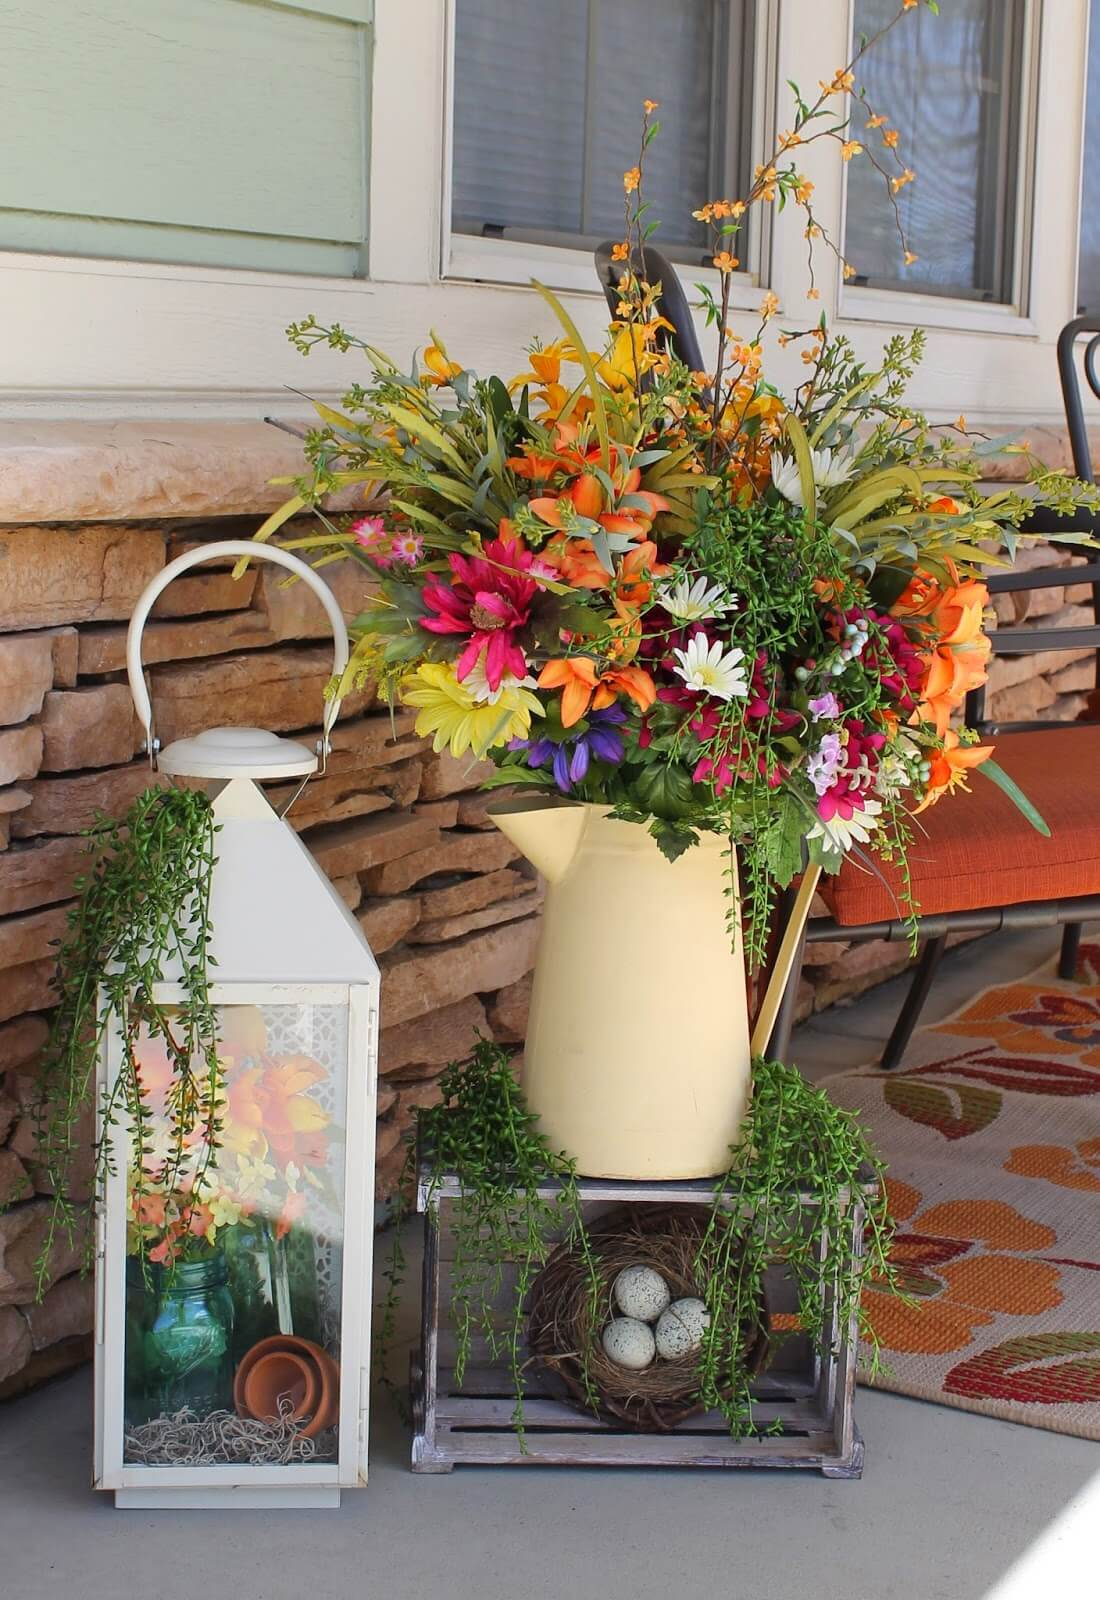 Watering Can and Lantern Floral Displays